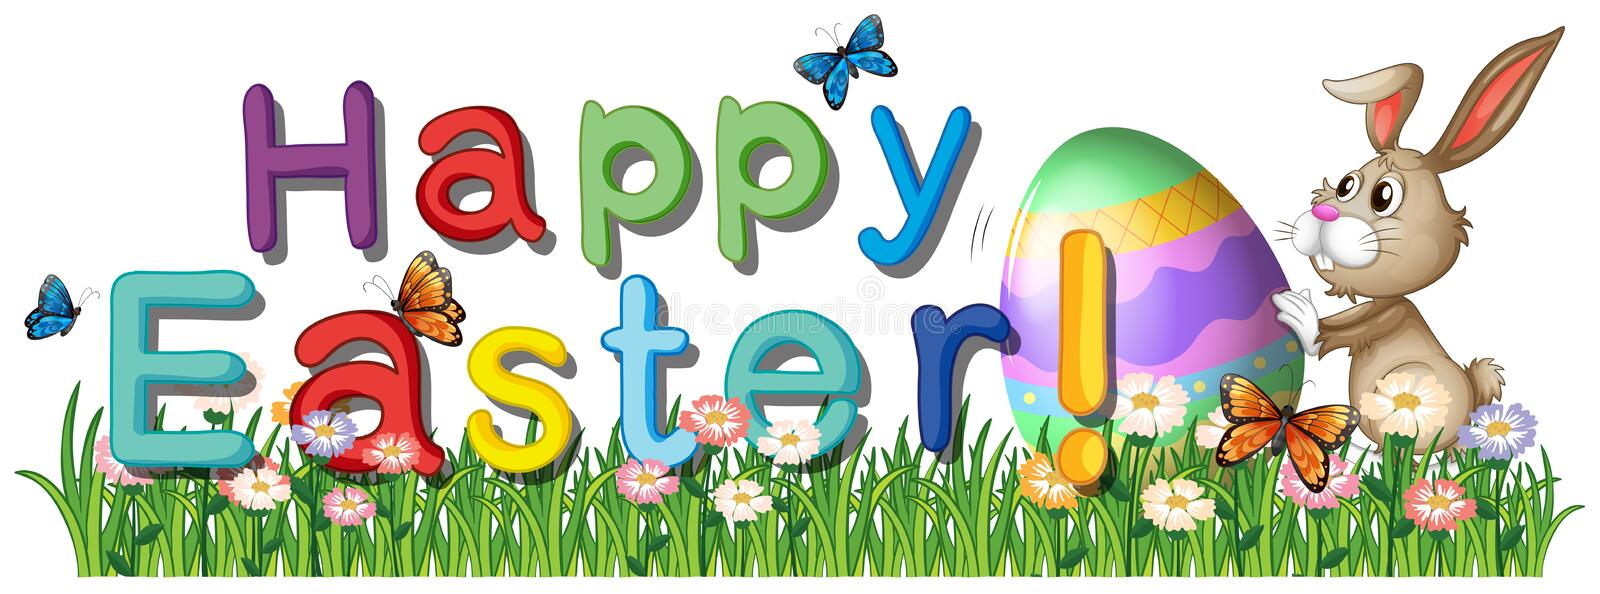 A happy easter greetings in the garden royalty free illustration